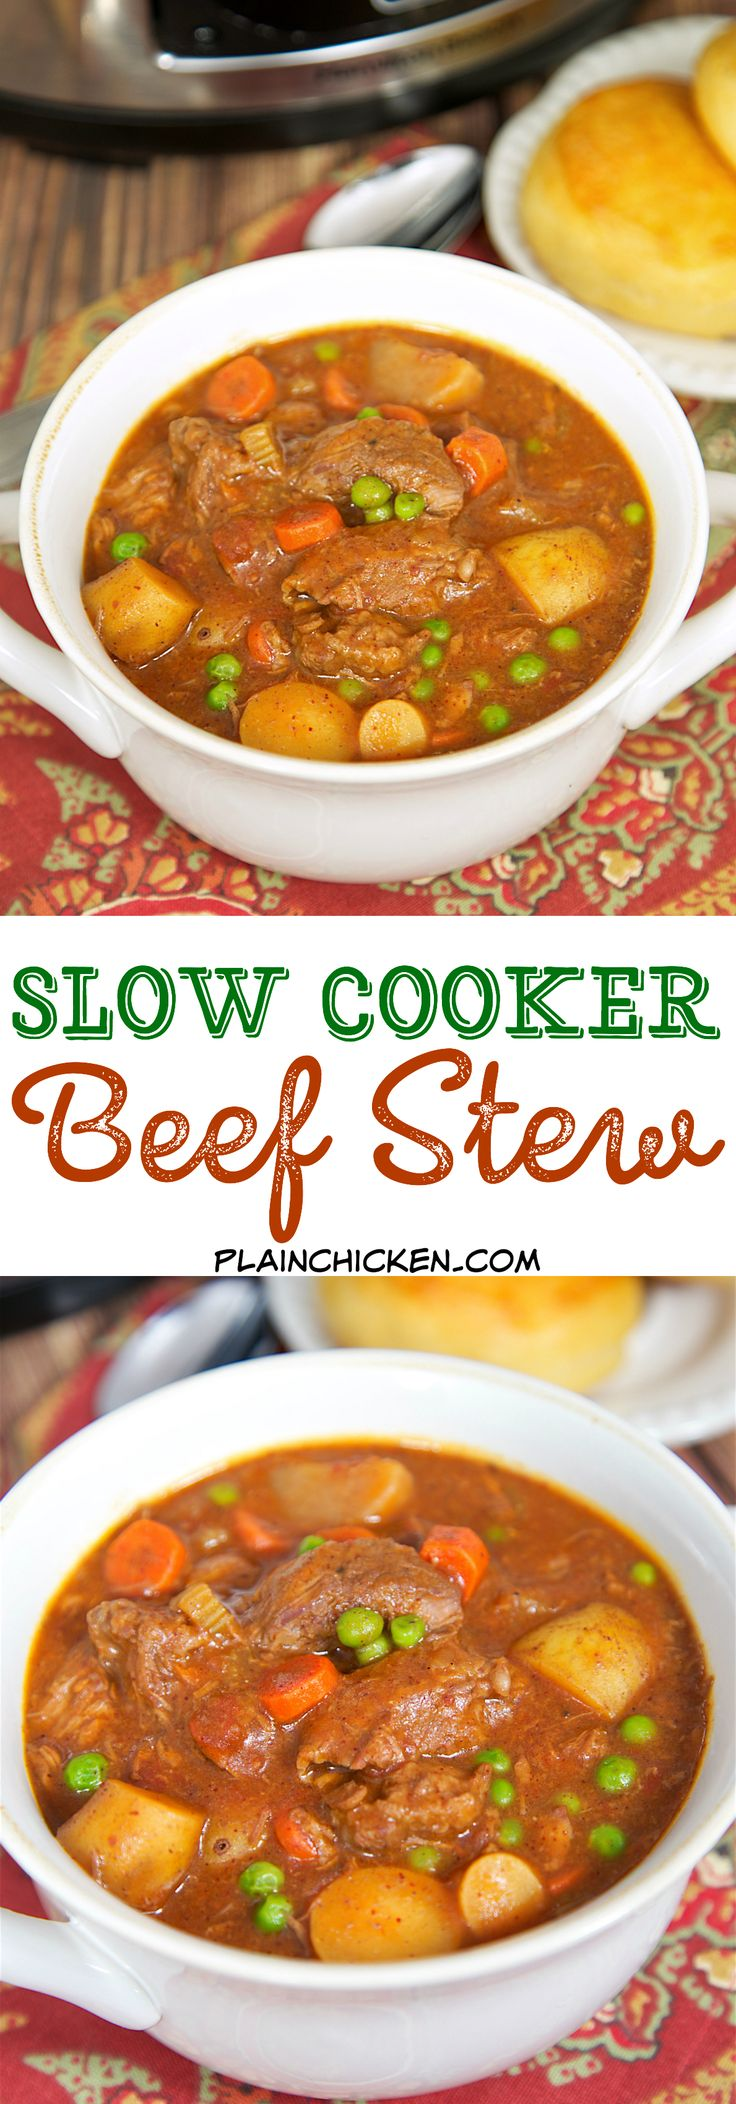 Slow Cooker Beef Stew - beef, potatoes, carrots, green peas, tomatoes, celery, chili powder, brown gravy mix, beef broth. Comfort food at its best! So easy and SO good. Everyone gobbled this up - even the kids!! Serve with some biscuits or cornbread for a complete meal!